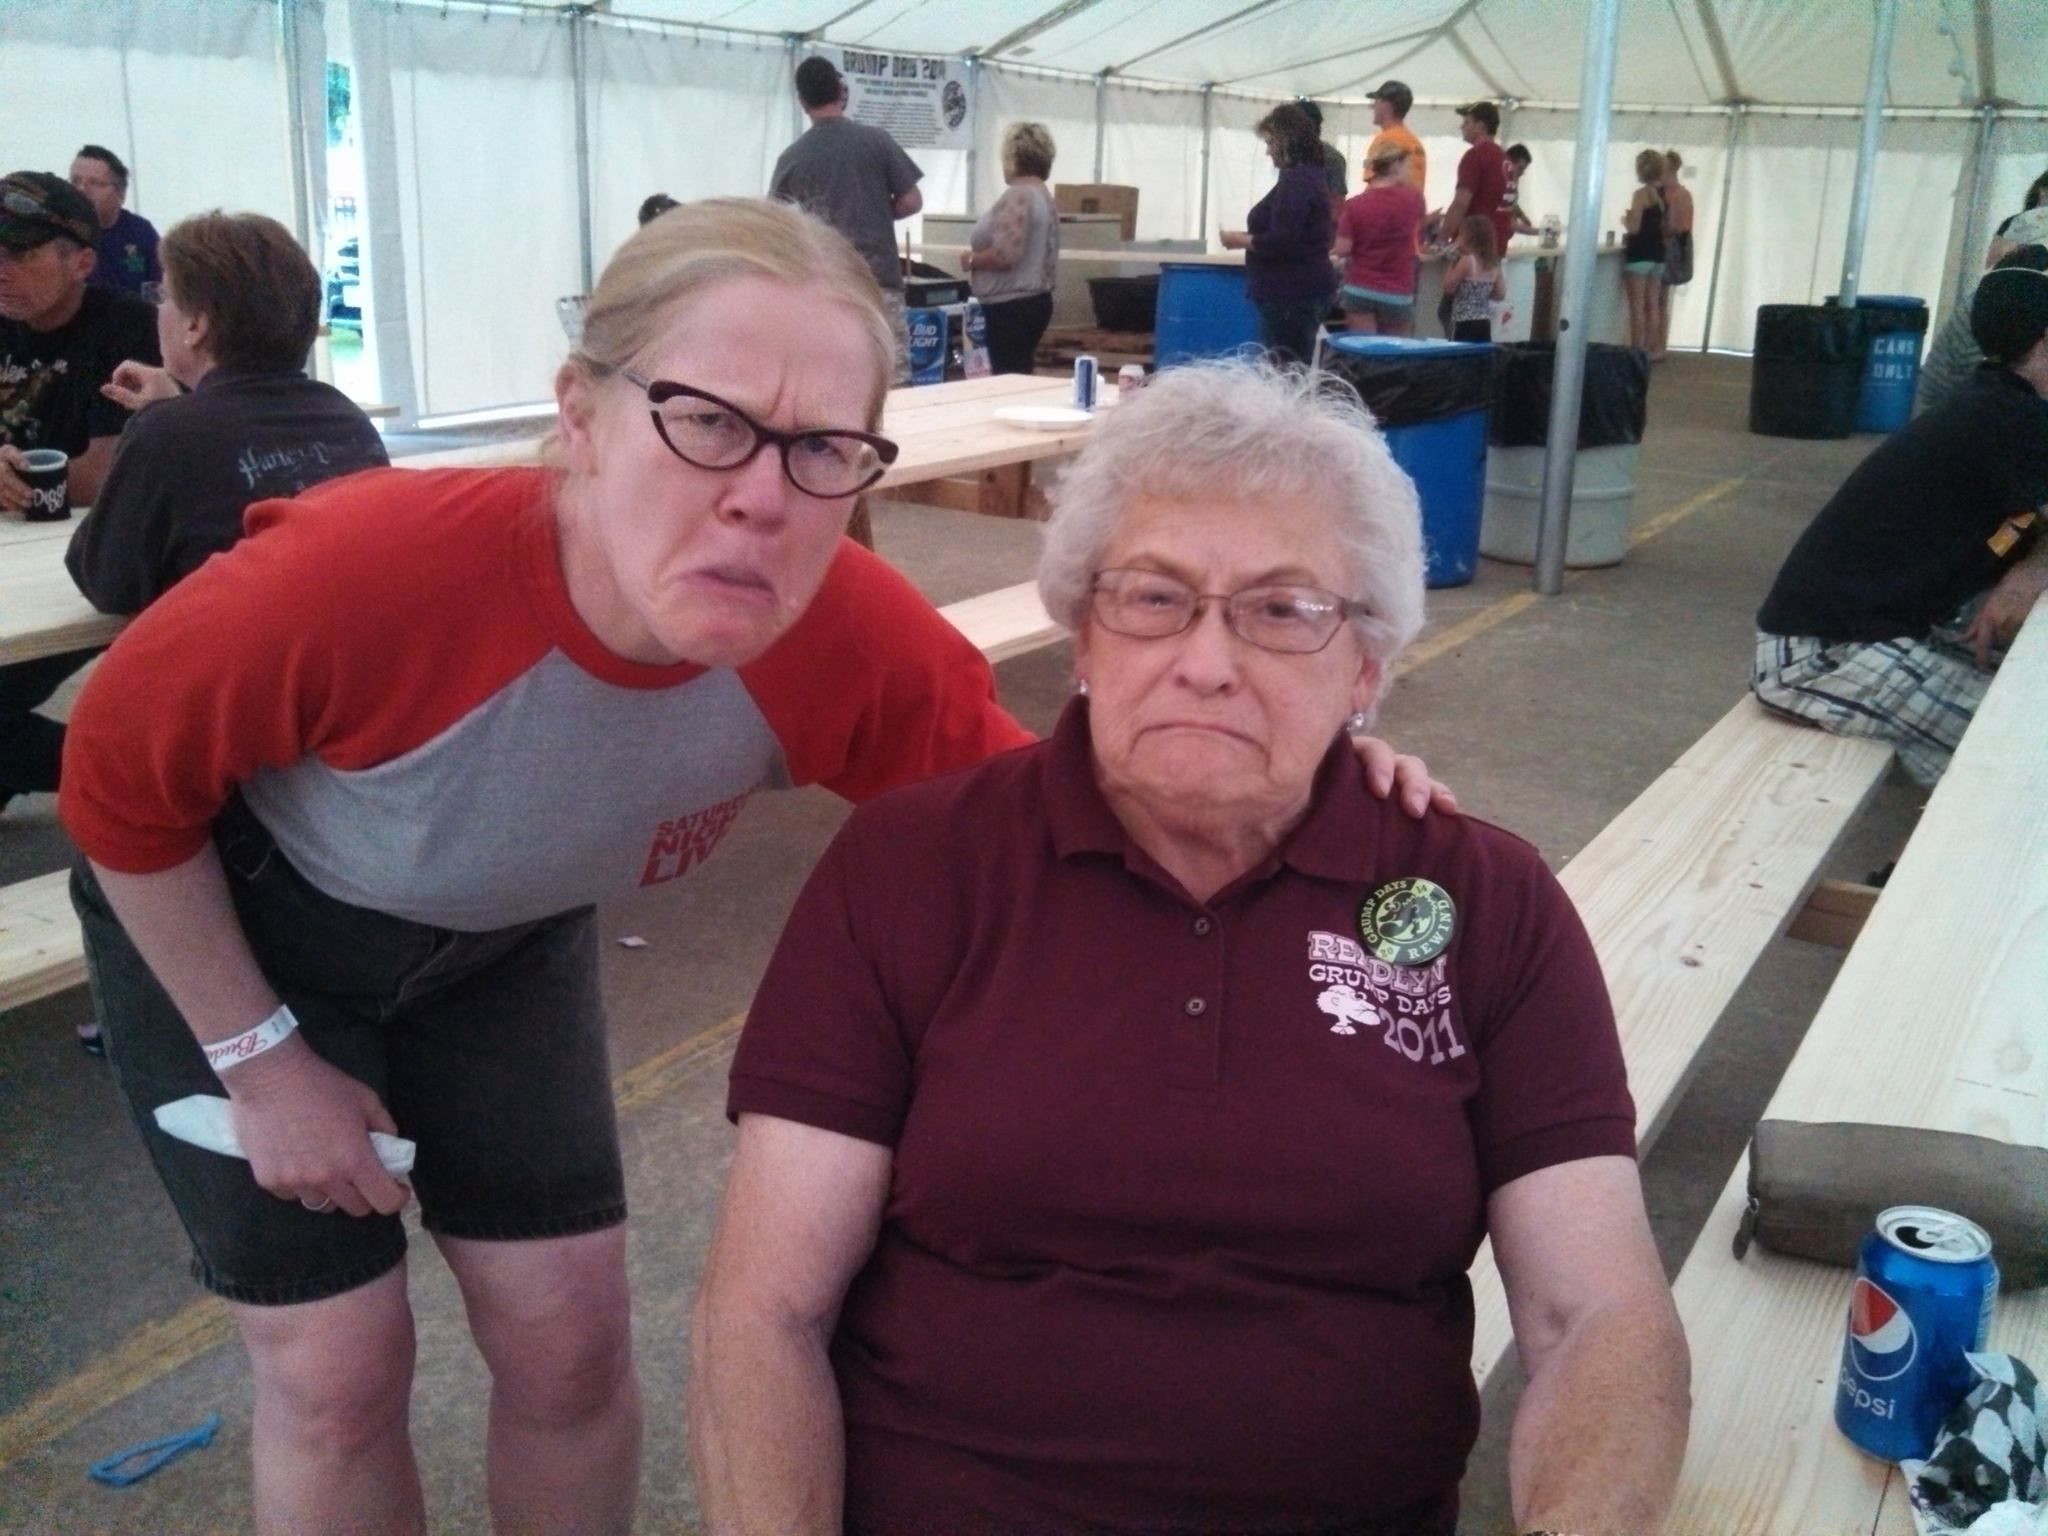 """Readlyn, Iowa's 2014 """"Grump of the Year"""" Jean Buenzow and I doing our imitation of many a New Year's visage...."""